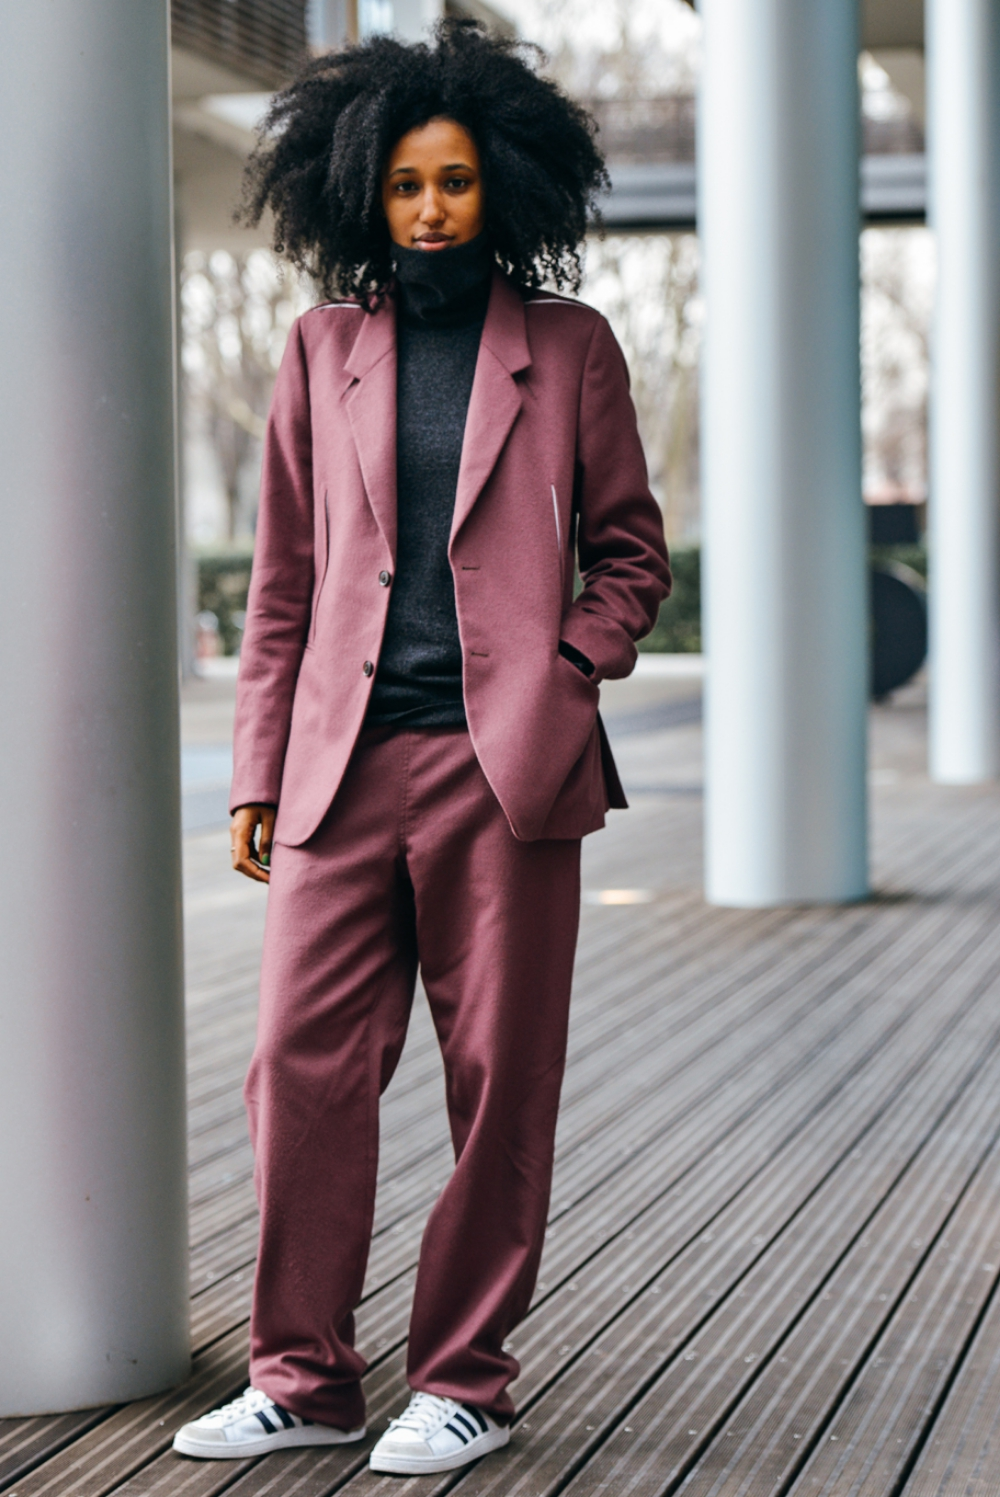 milan-fashion-week-fall-2015-street-style-tommy-ton-julia-sarr-jamois.jpg